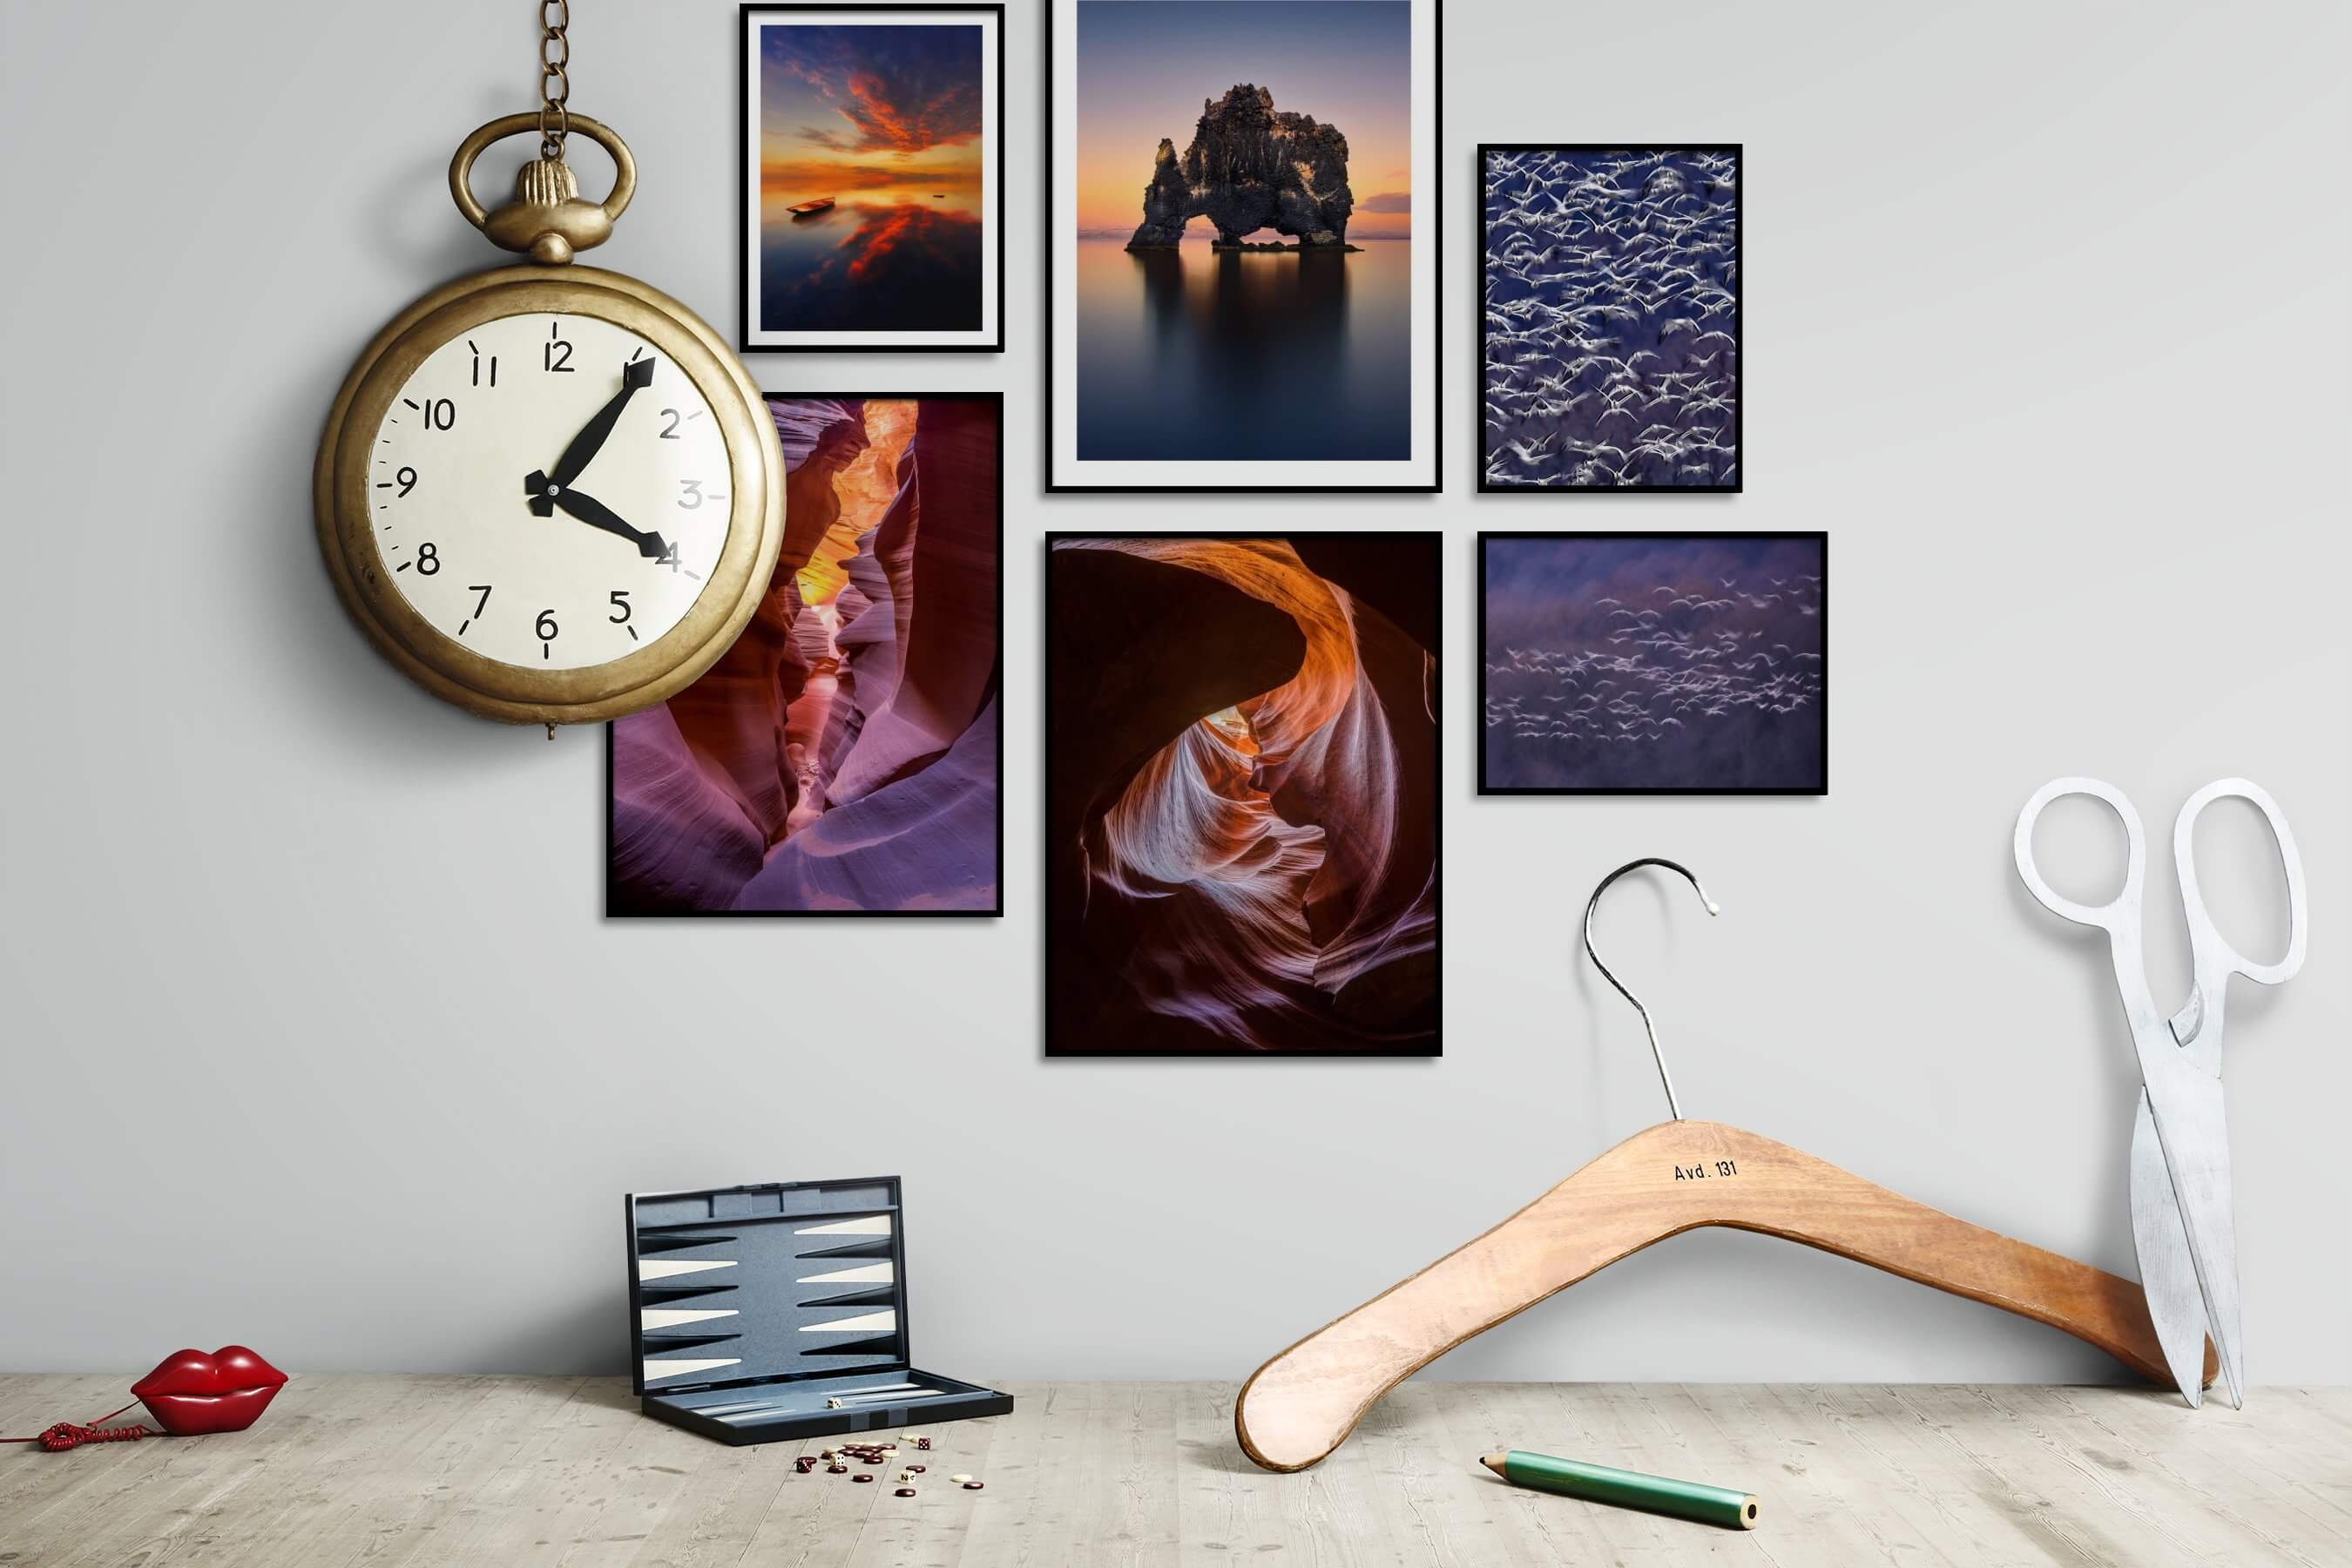 Gallery wall idea with six framed pictures arranged on a wall depicting For the Moderate, Beach & Water, Mindfulness, For the Minimalist, Nature, For the Maximalist, and Animals